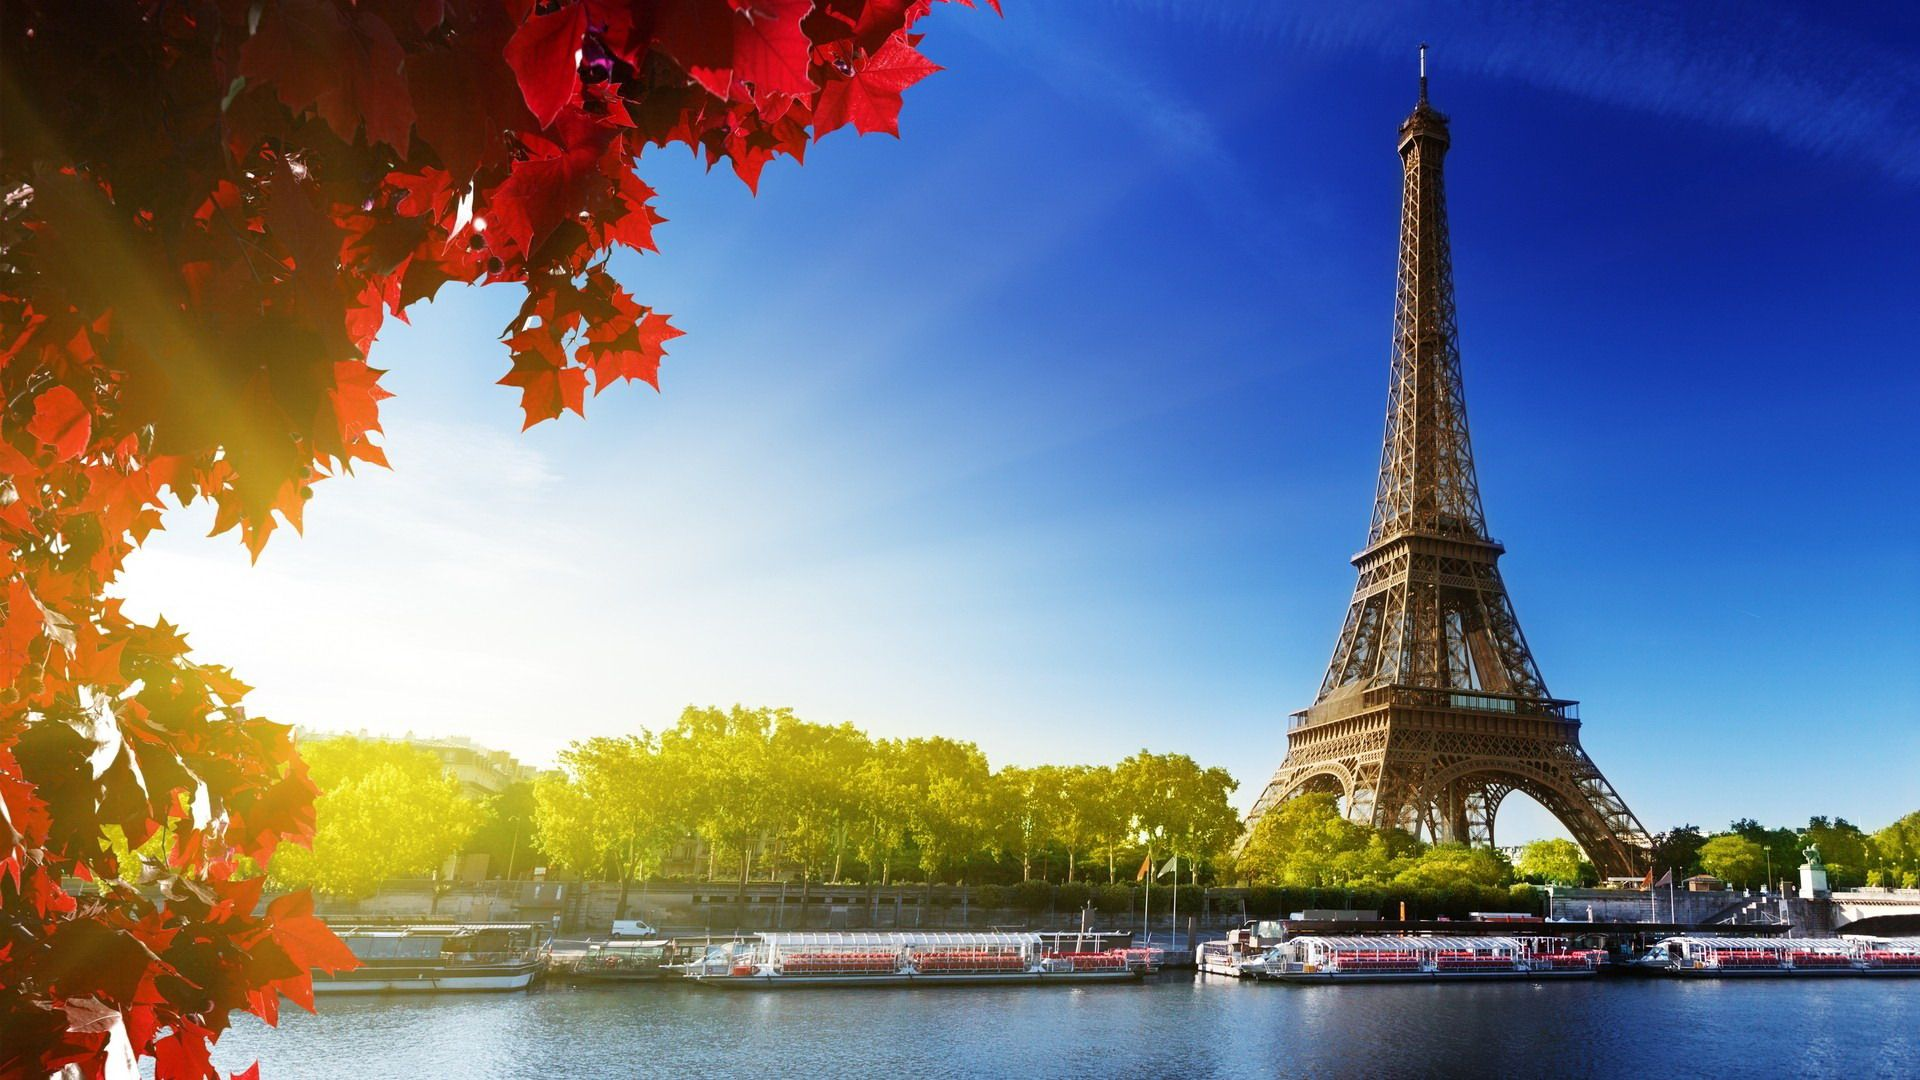 Paris is perfect for property investment